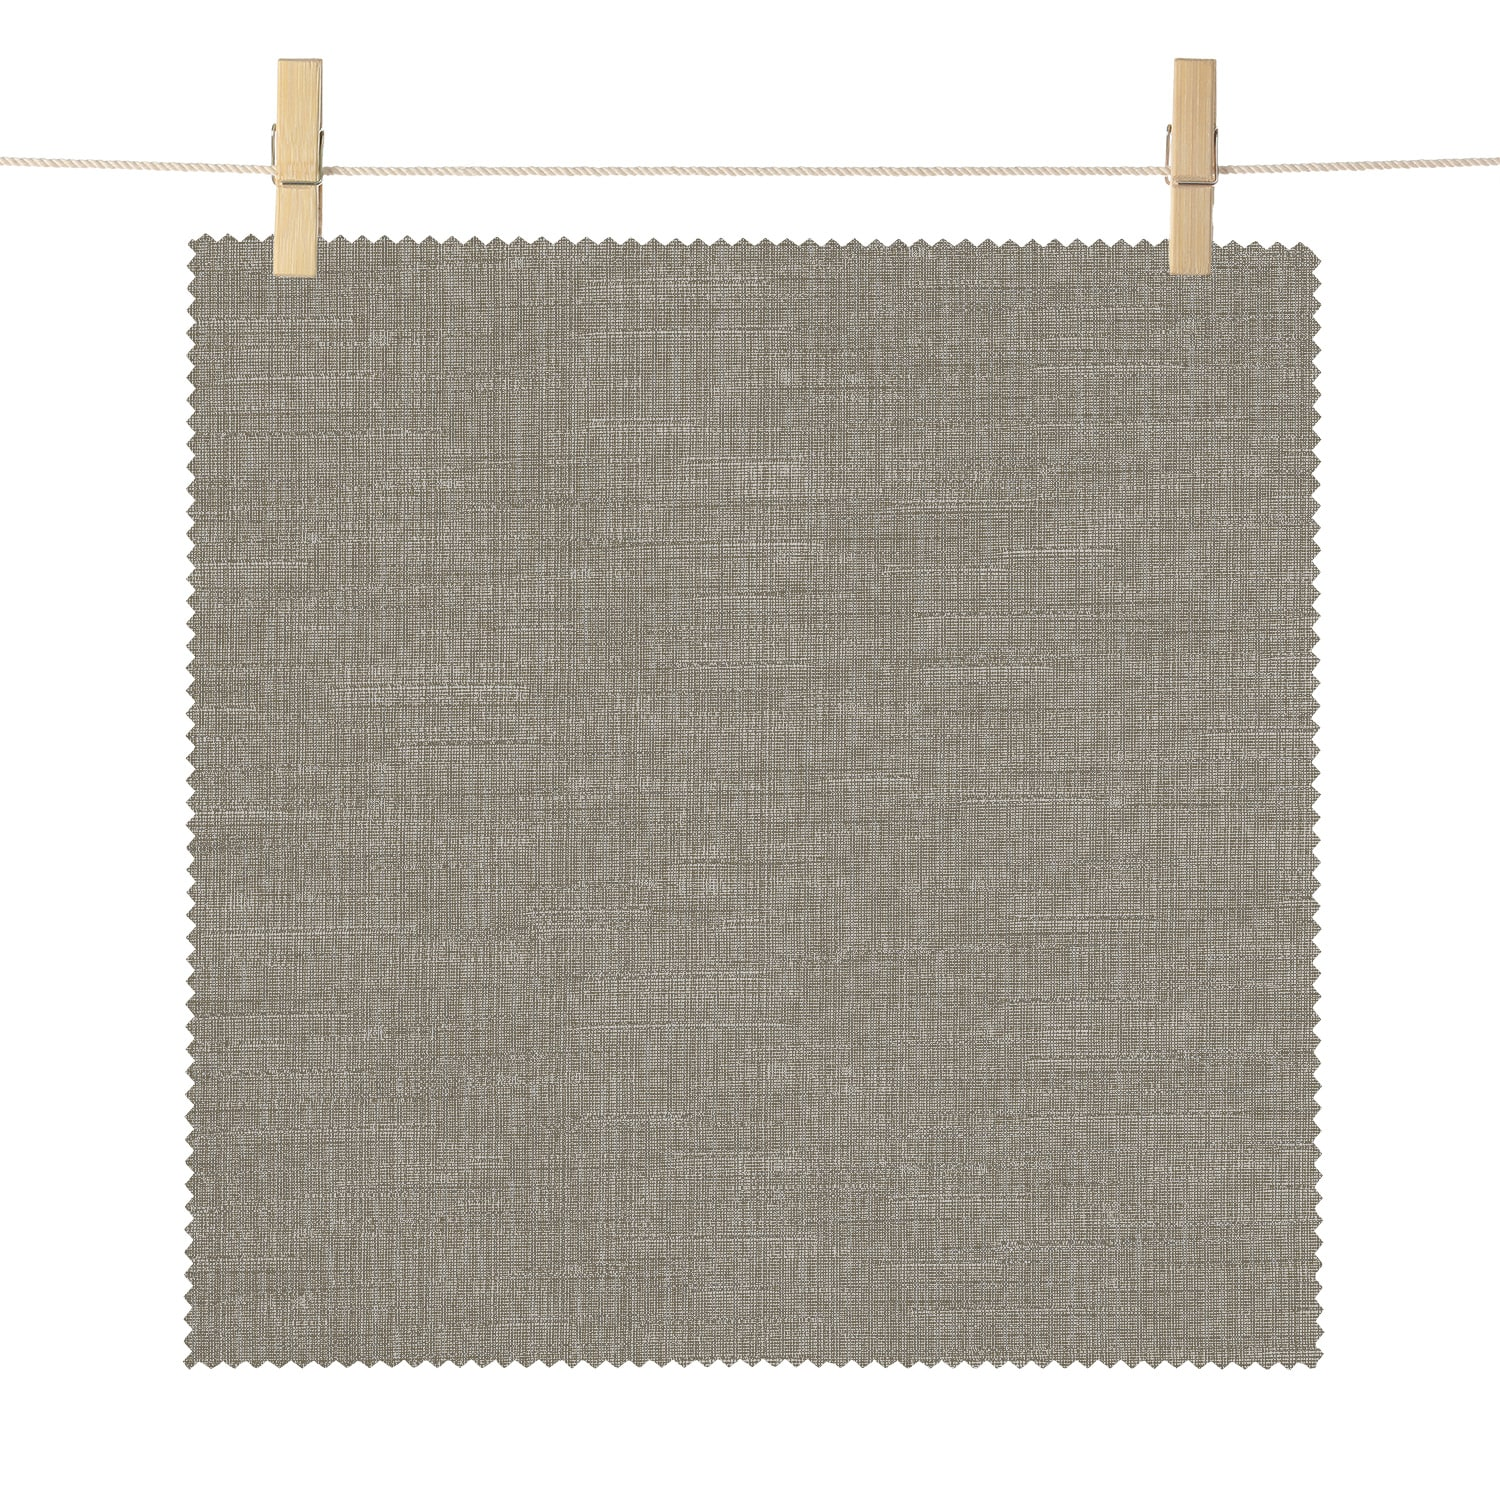 Saratoga Grey Bedford Textured Light Filtering Roller Shade Swatch